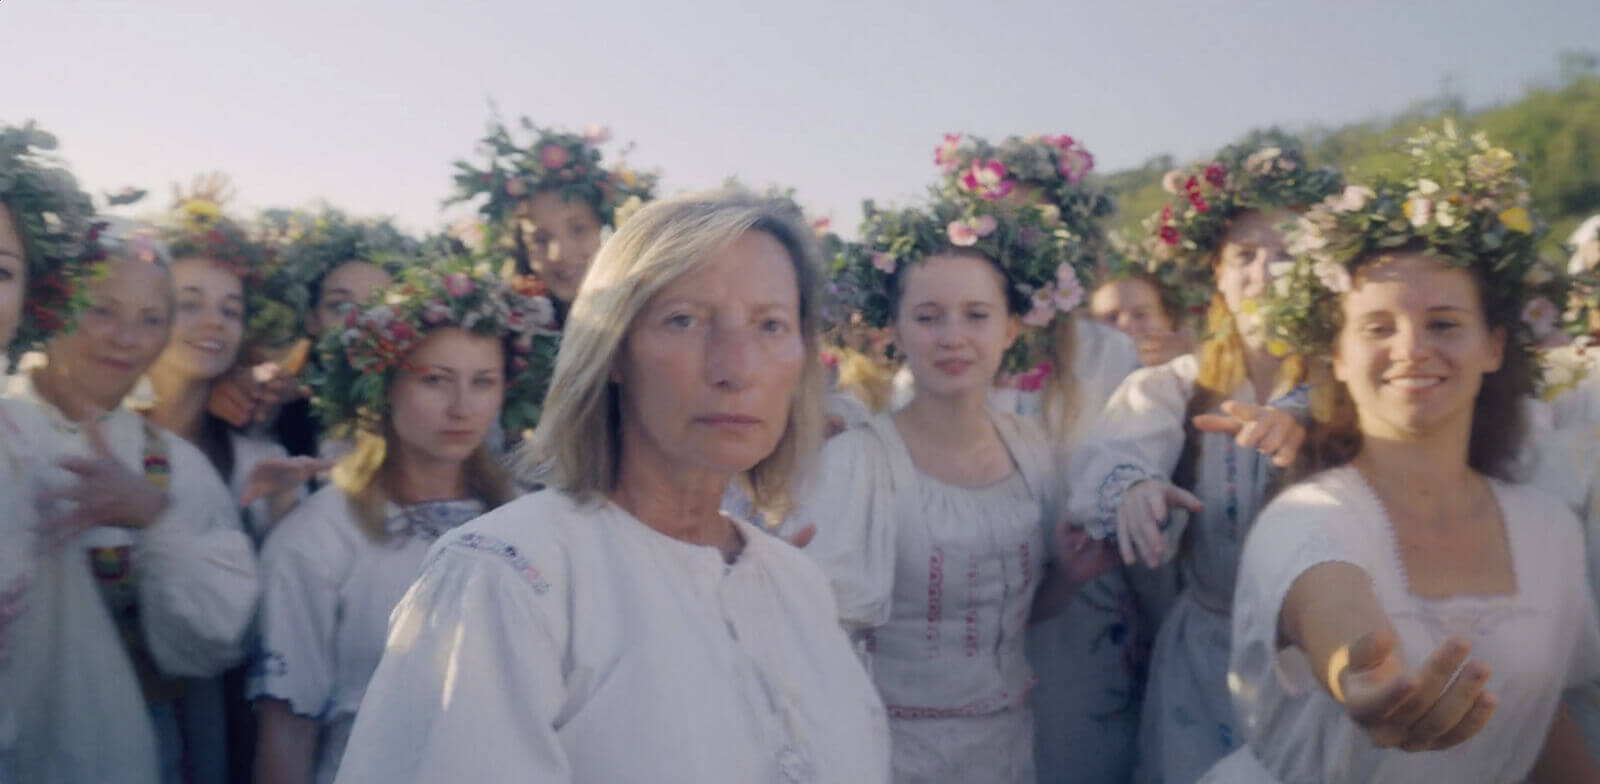 Midsommar Explained - Dani's Sister Among the Villagers